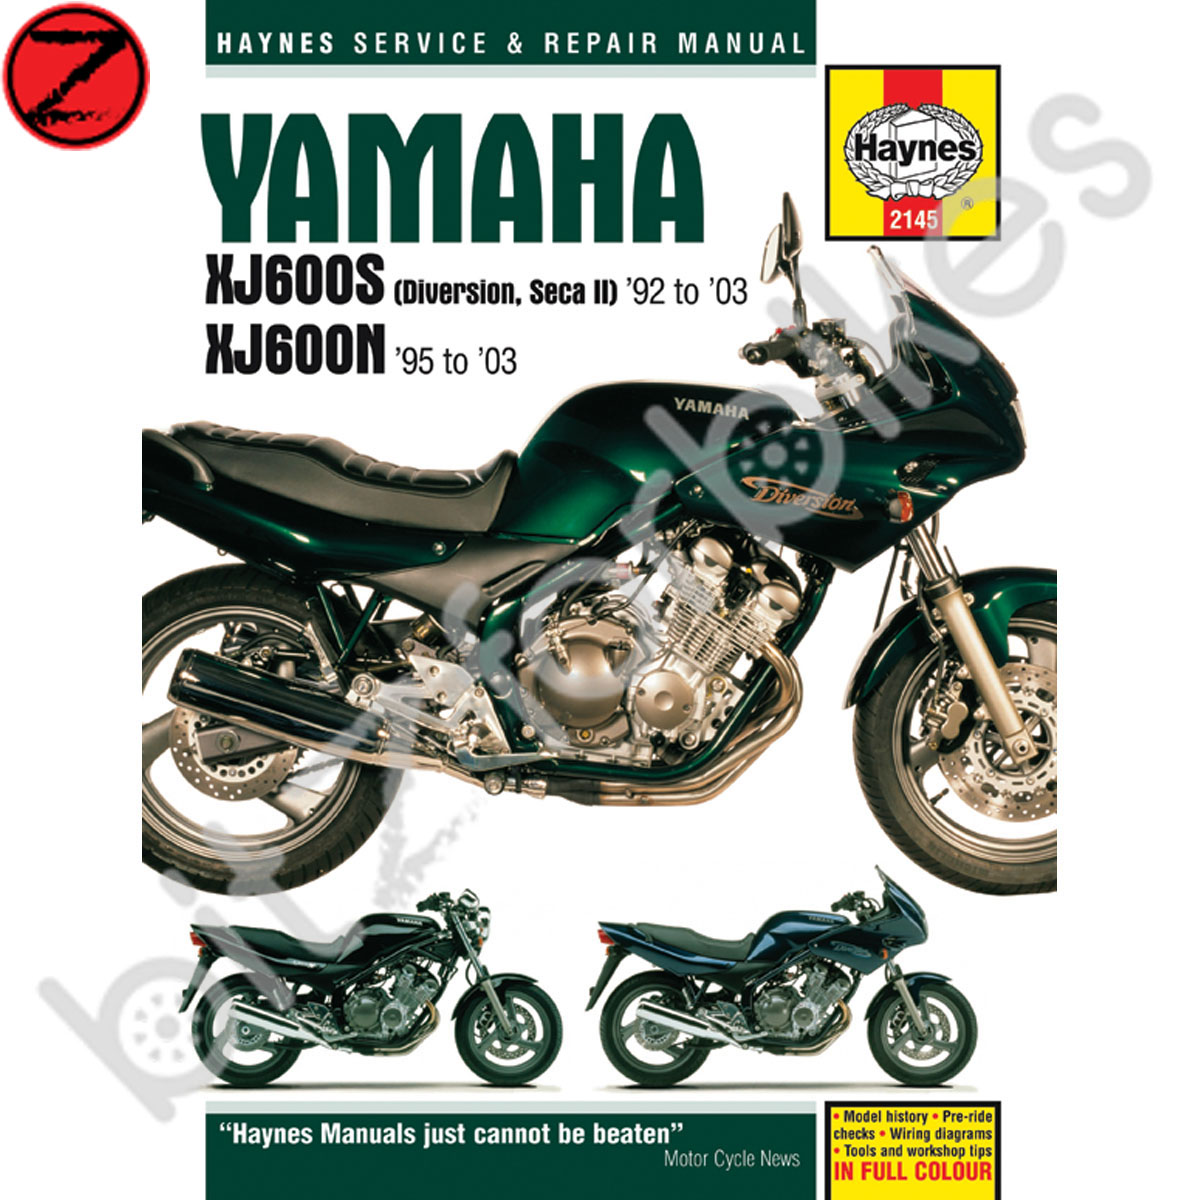 Sentinel Haynes Motorcycle Manual Yamaha XJ600N XJ600 Diversion 92-03